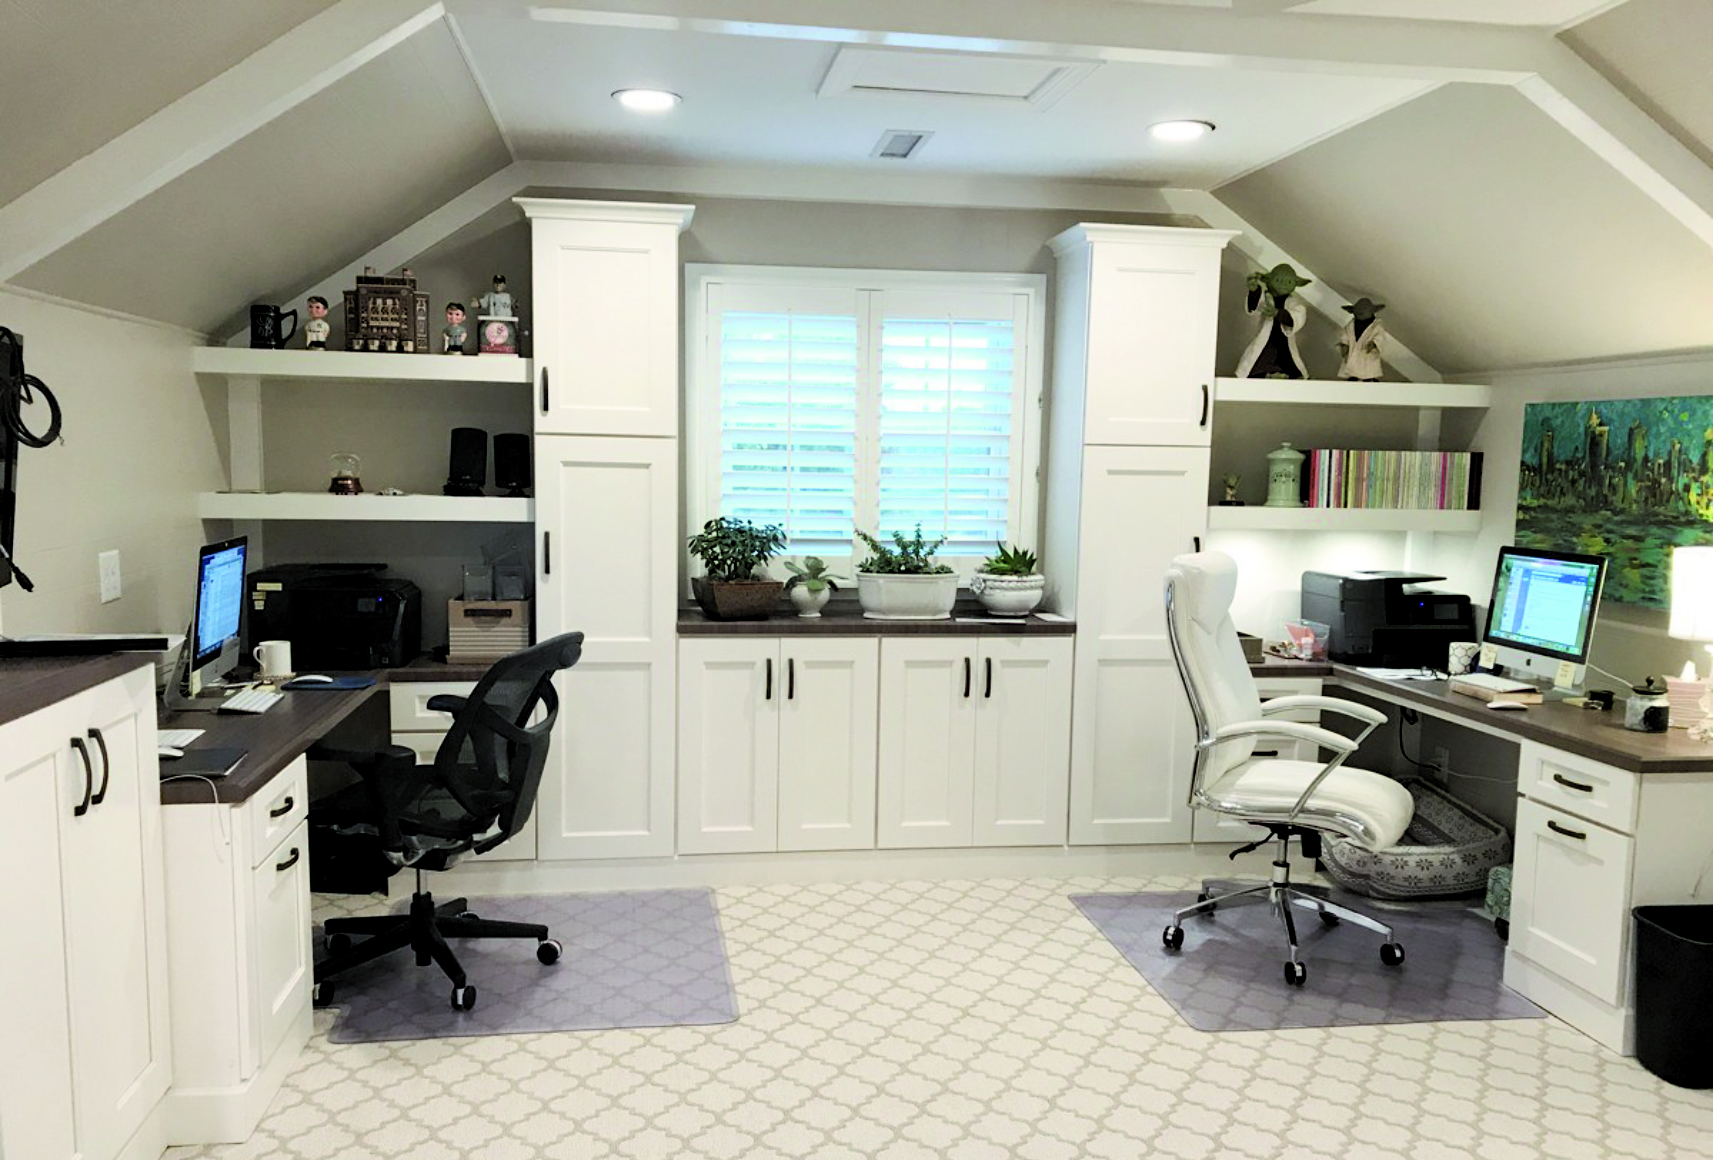 Functional home office design becomes more important for work, study through pandemic